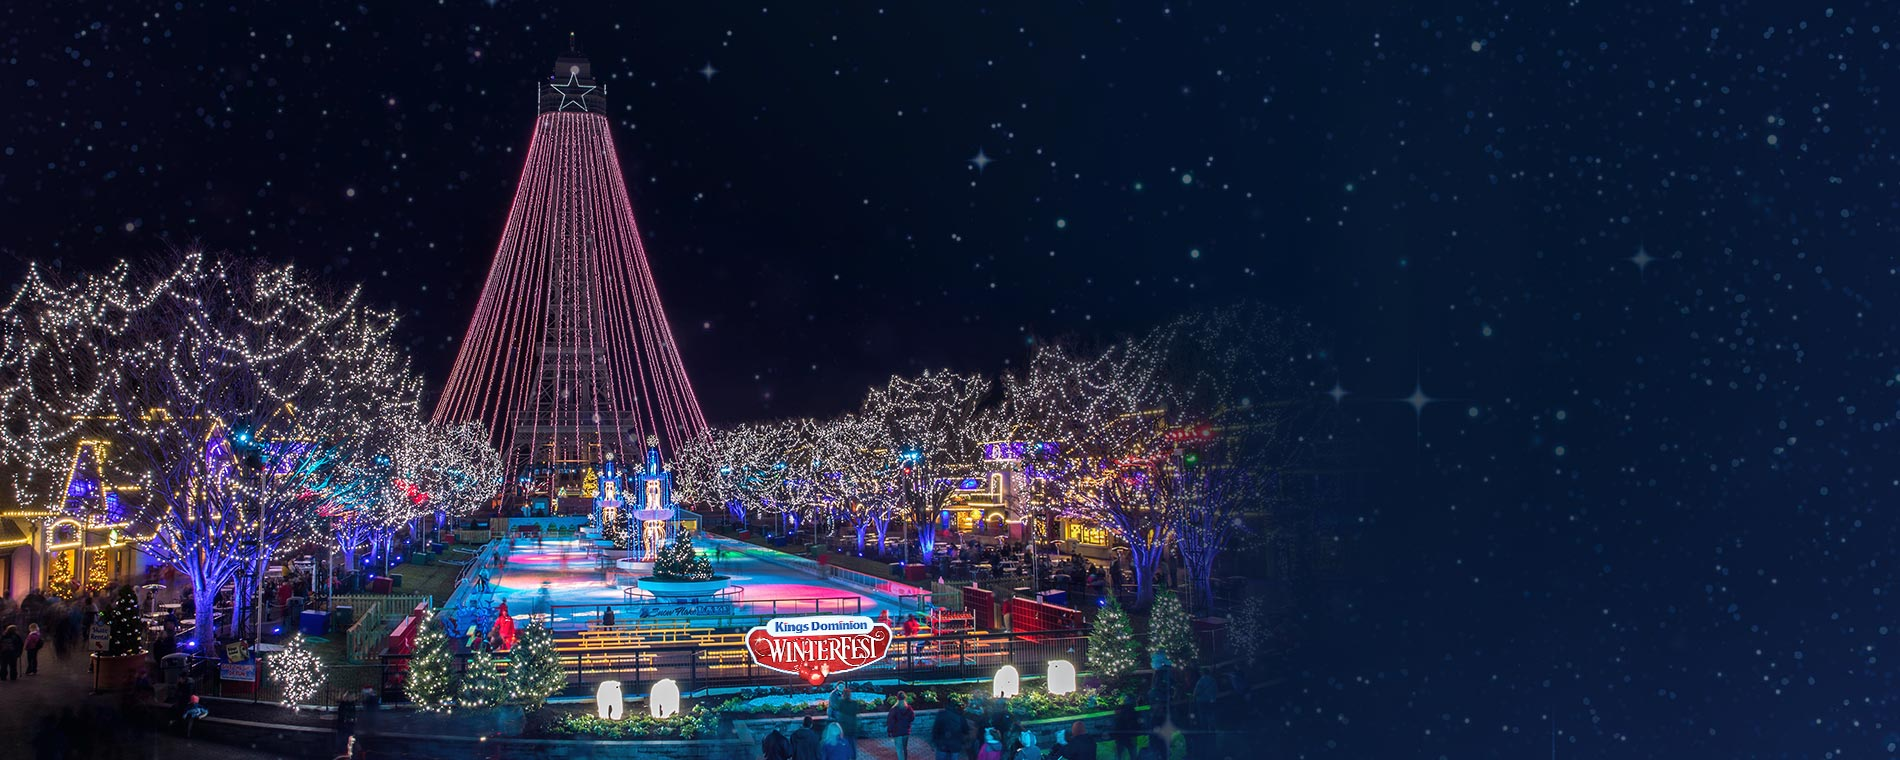 Live Performance at Kings Dominion's WinterFest Holiday Event